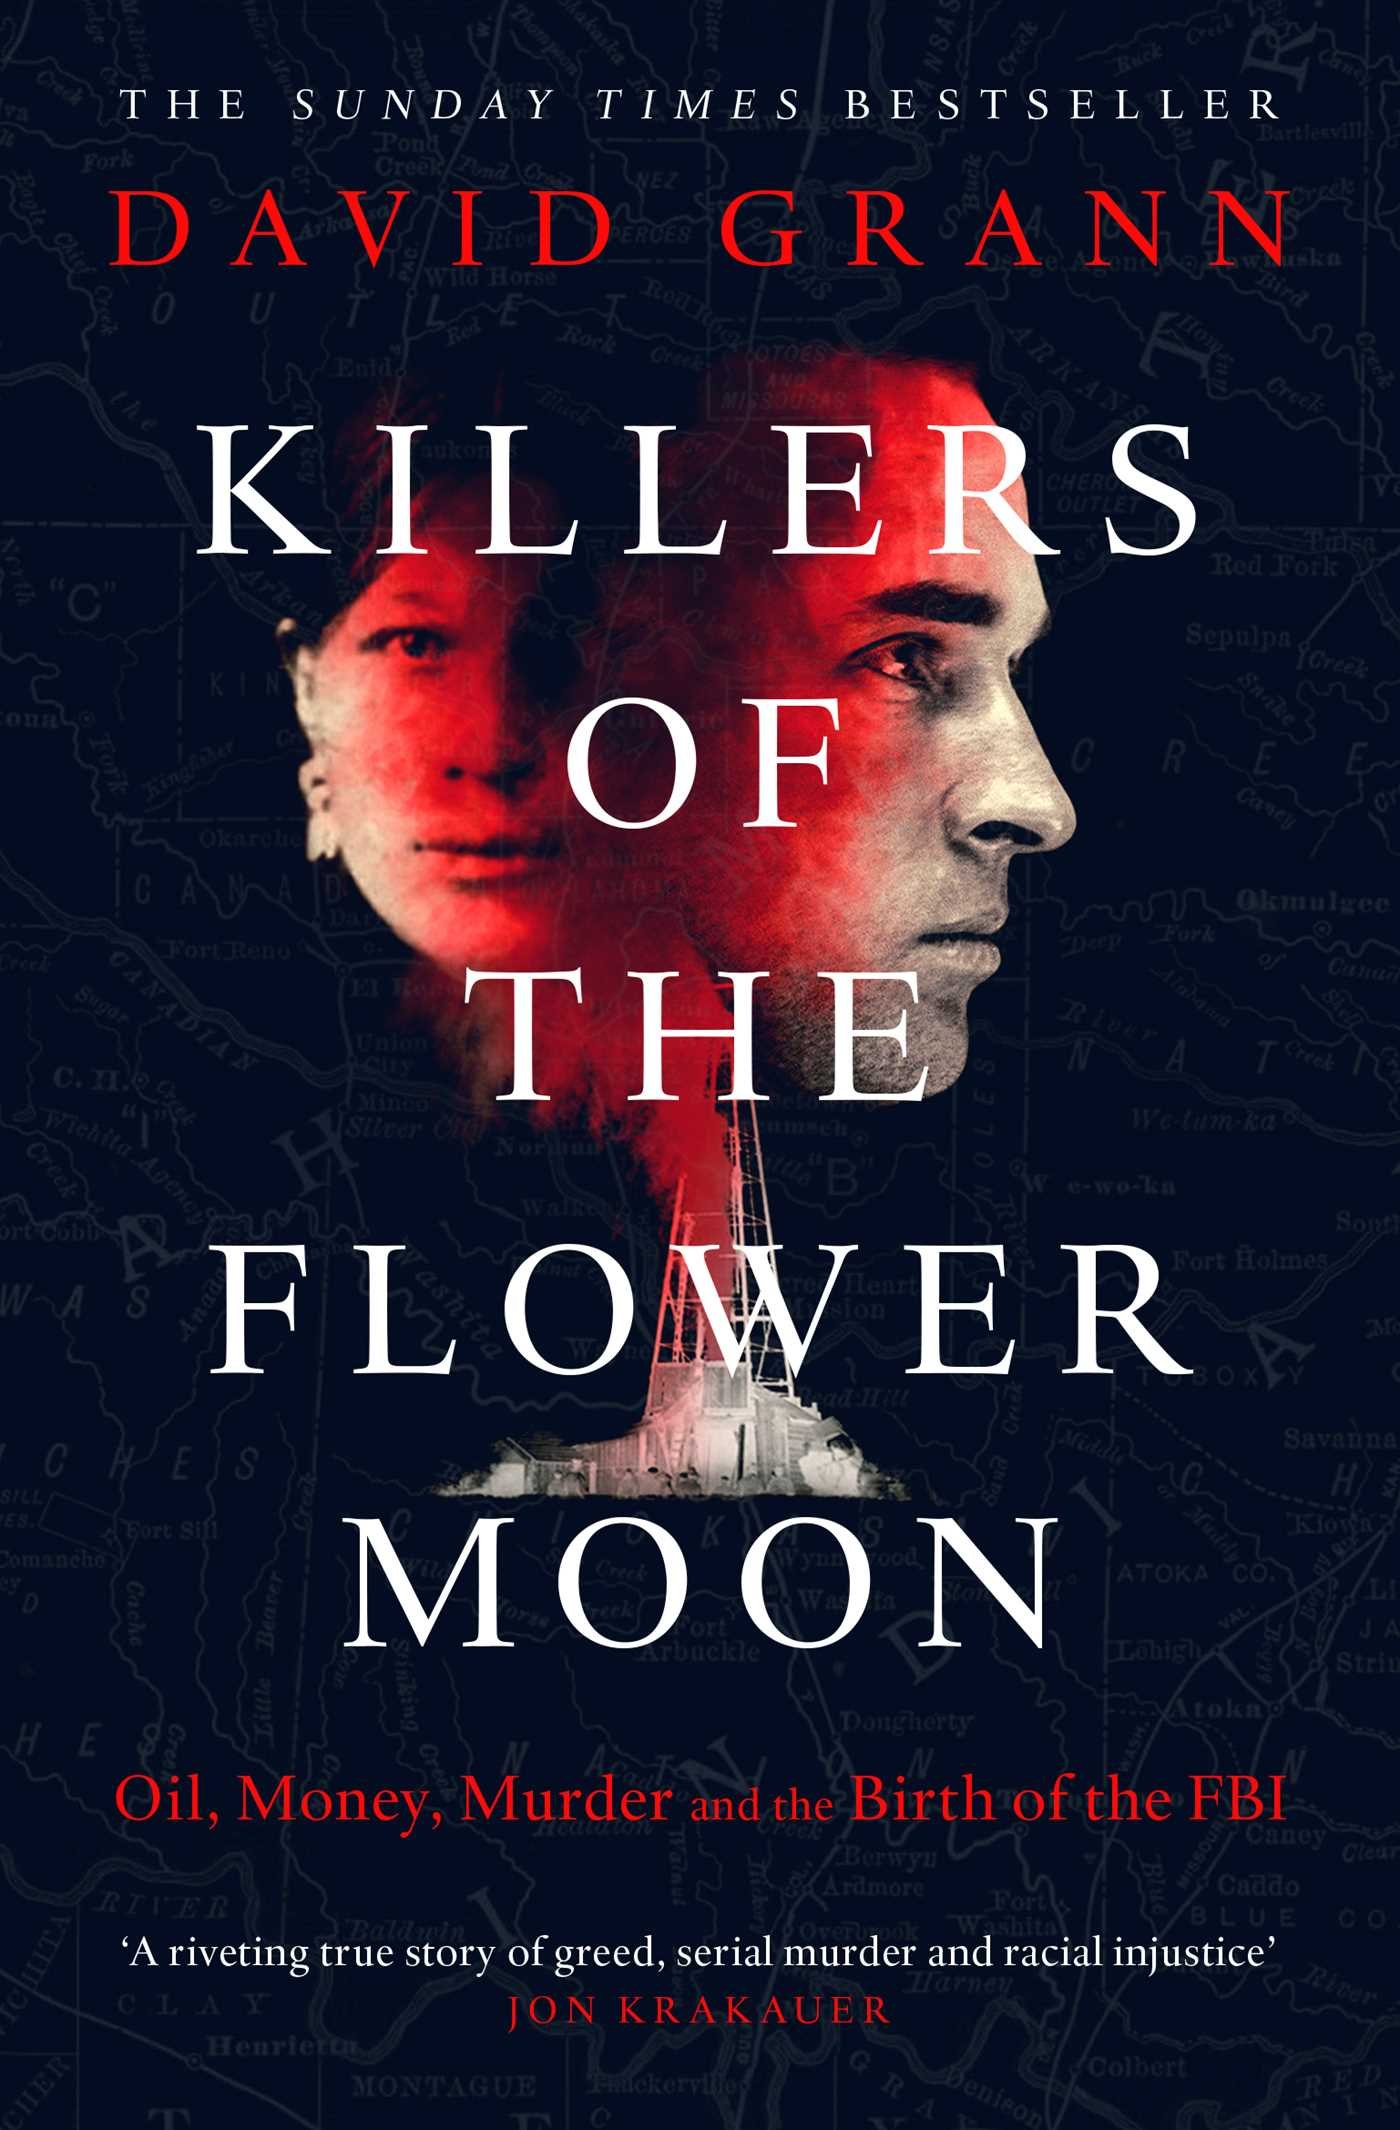 KILLERS OF THE FLOWER MOON : OIL, MONEY, MURDER AND THE BIRTH OF THE FBI, OIL, MONEY, MURDER AND THE BIRTH OF THE FBI